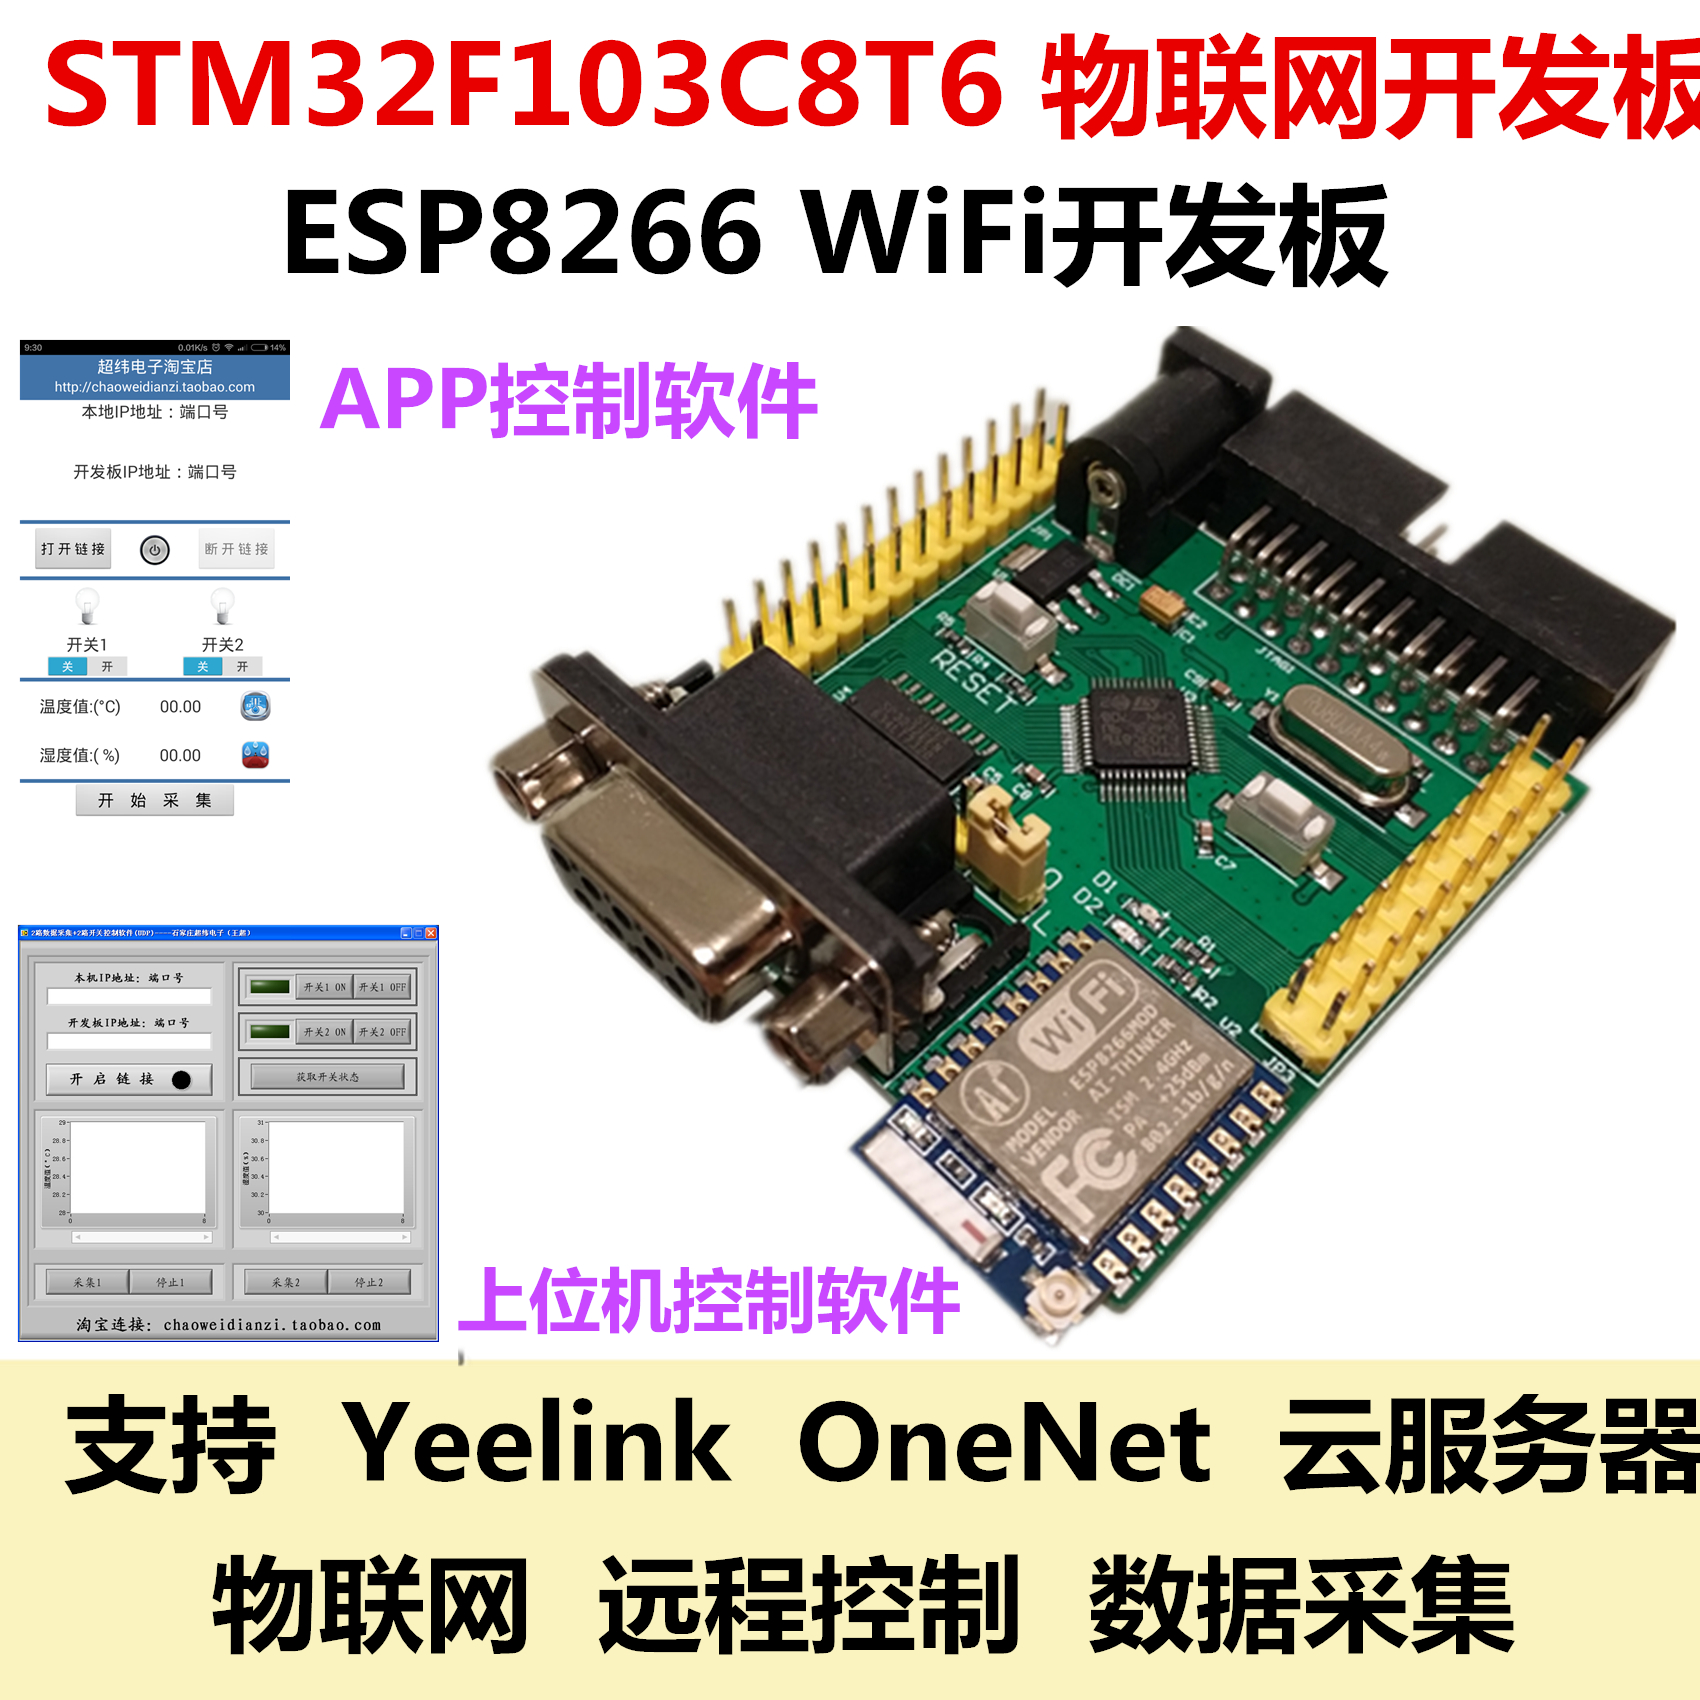 Internet of Things Remote Control, STM32 Development Board, Esp8266 WiFi Development Board, Smart Home gprs gsm sms development board communication module m26 ultra sim900 stm32 internet of things with positioning